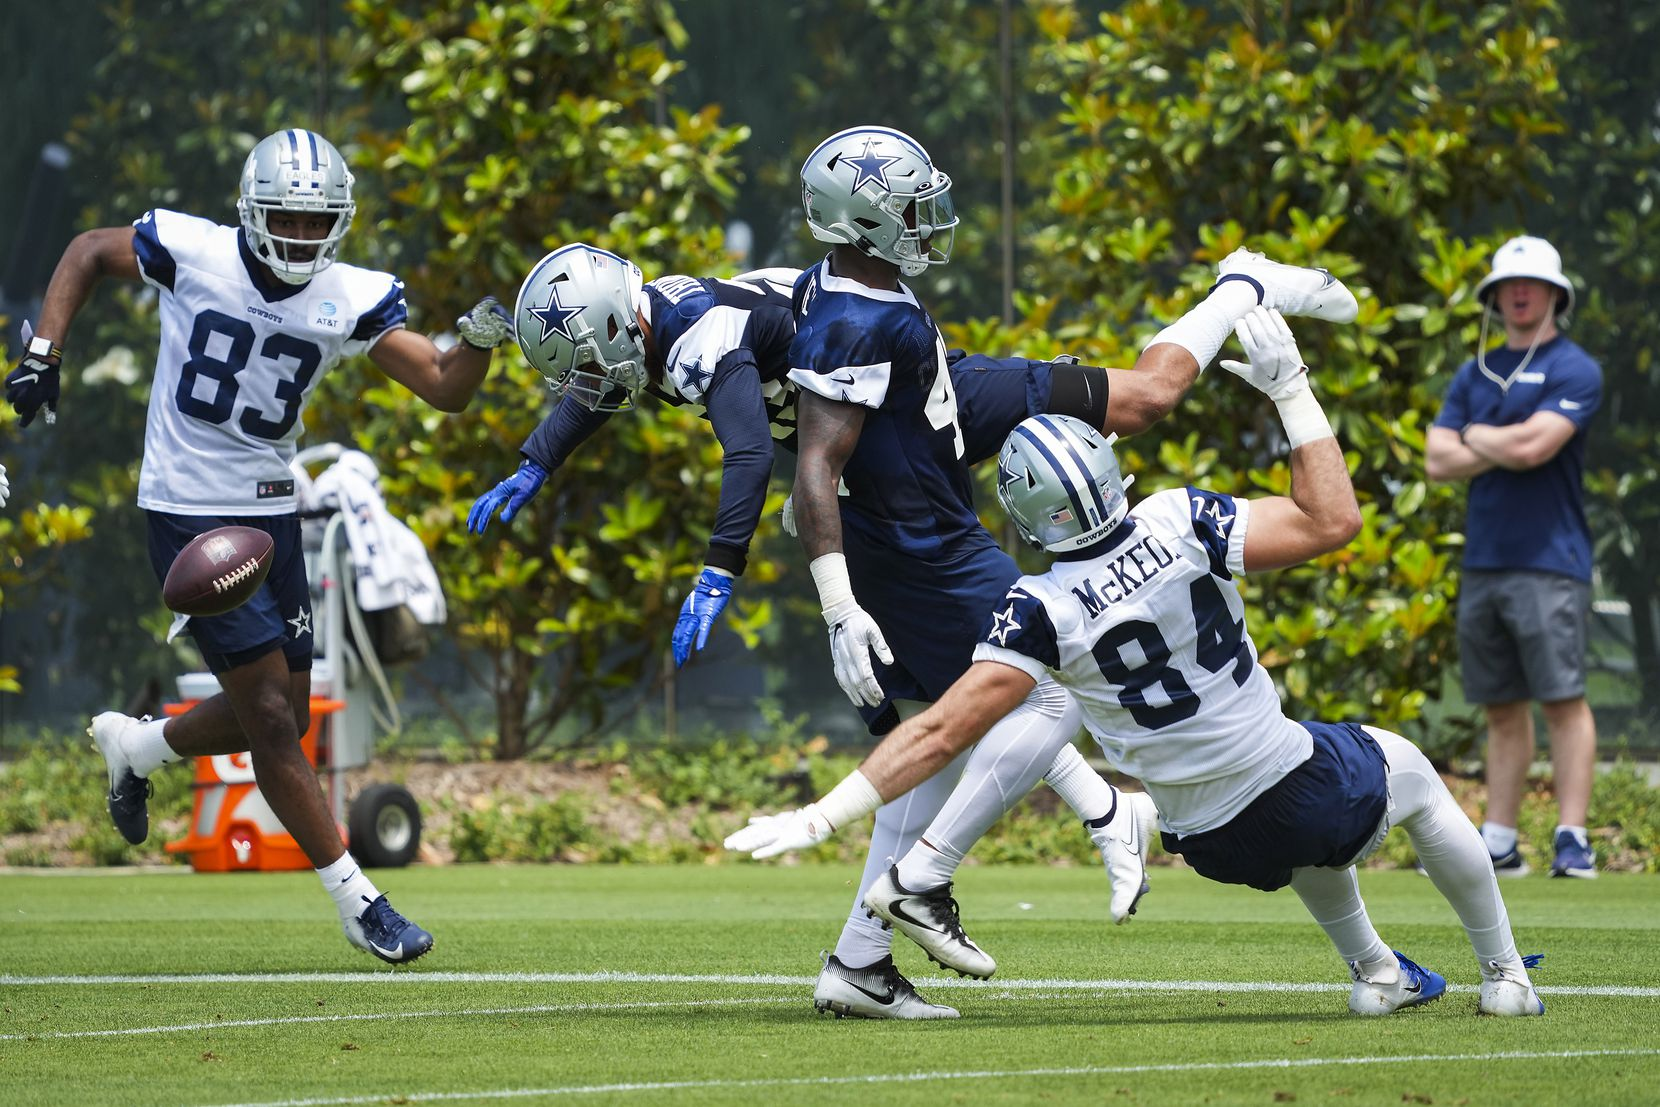 Dallas Cowboys safety Darian Thompson (23) leaps over tight end Sean McKeon (84), linebacker Keanu Neal (42) and wide receiver Brennan Eagles (83) to break up a pass during a minicamp practice at The Star on Tuesday, June 8, 2021, in Frisco. (Smiley N. Pool/The Dallas Morning News)